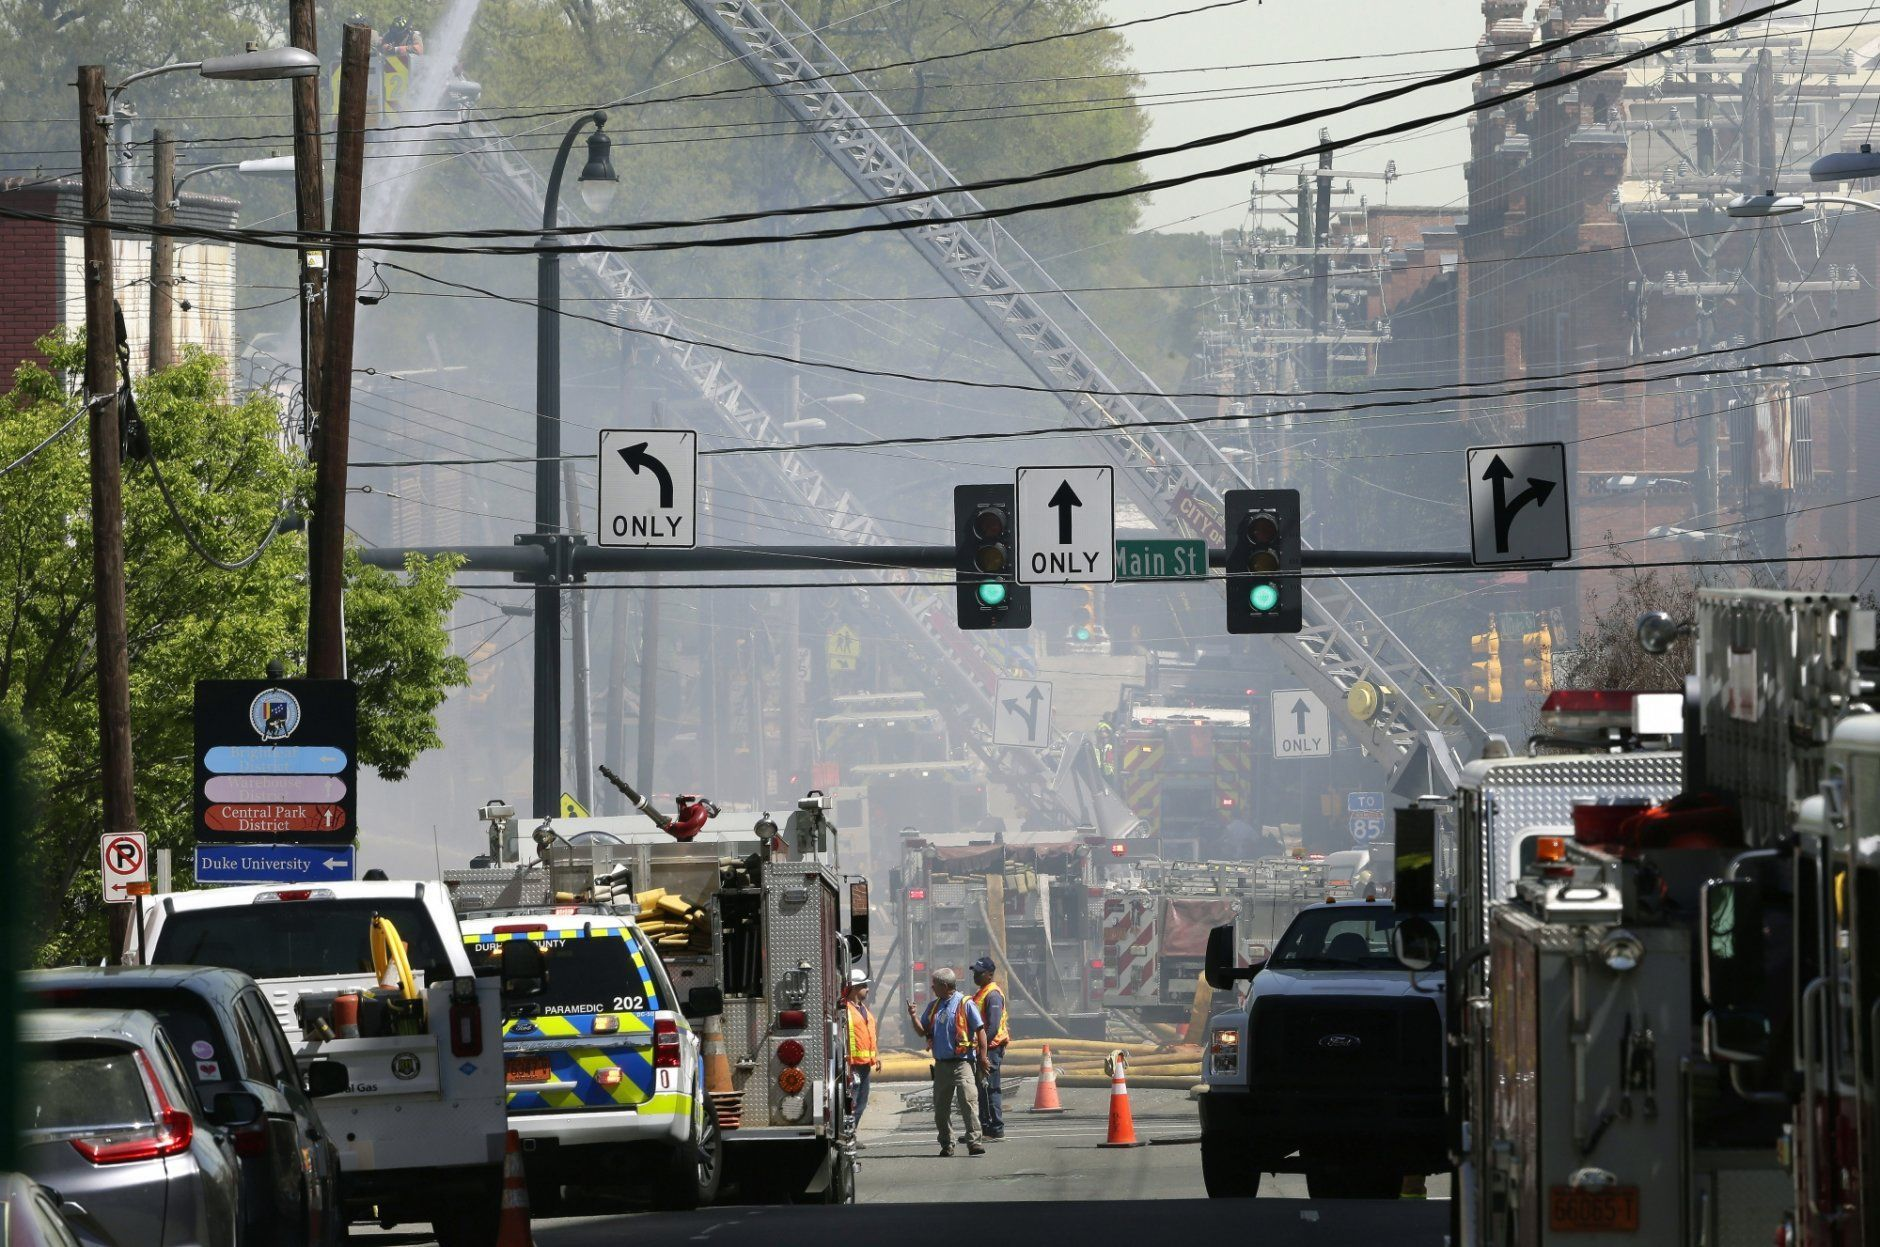 Firefighters and emergency personnel work the scene of an explosion and building fire in downtown Durham, N.C., Wednesday, April 10, 2019. (AP Photo/Gerry Broome)